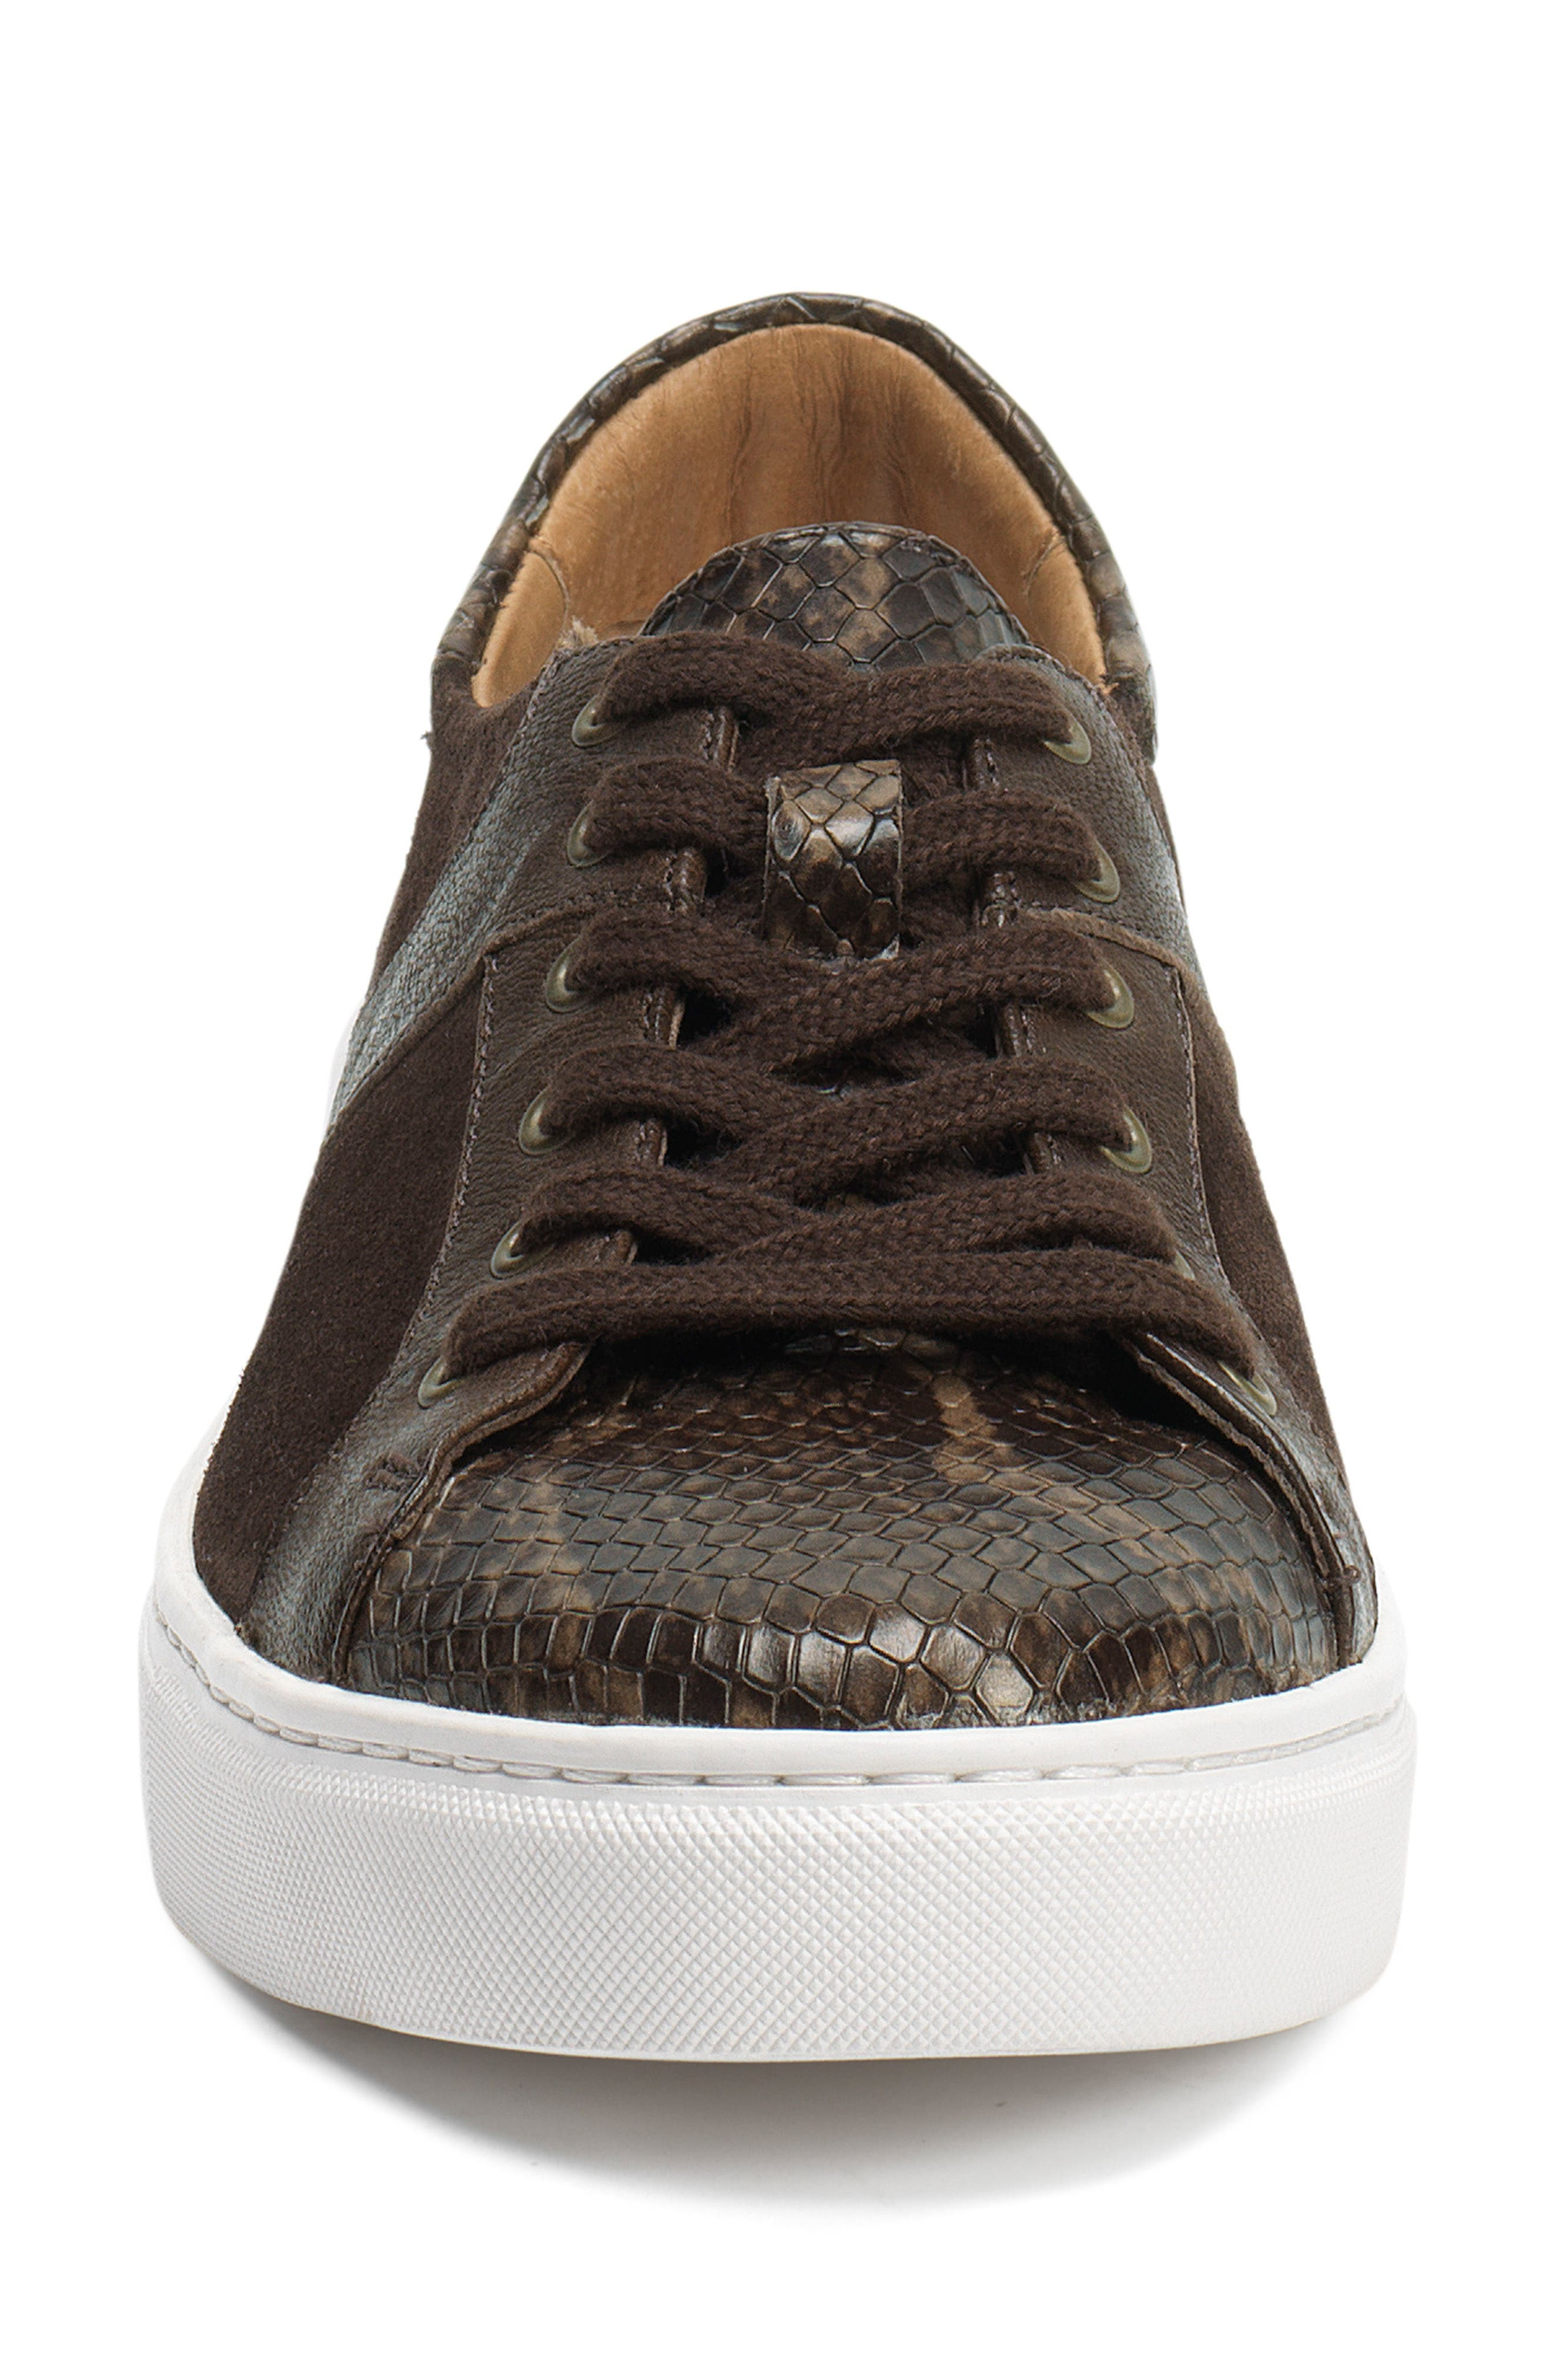 TRASK, Lindsey Sneaker, Alternate thumbnail 4, color, BROWN PRINT LEATHER